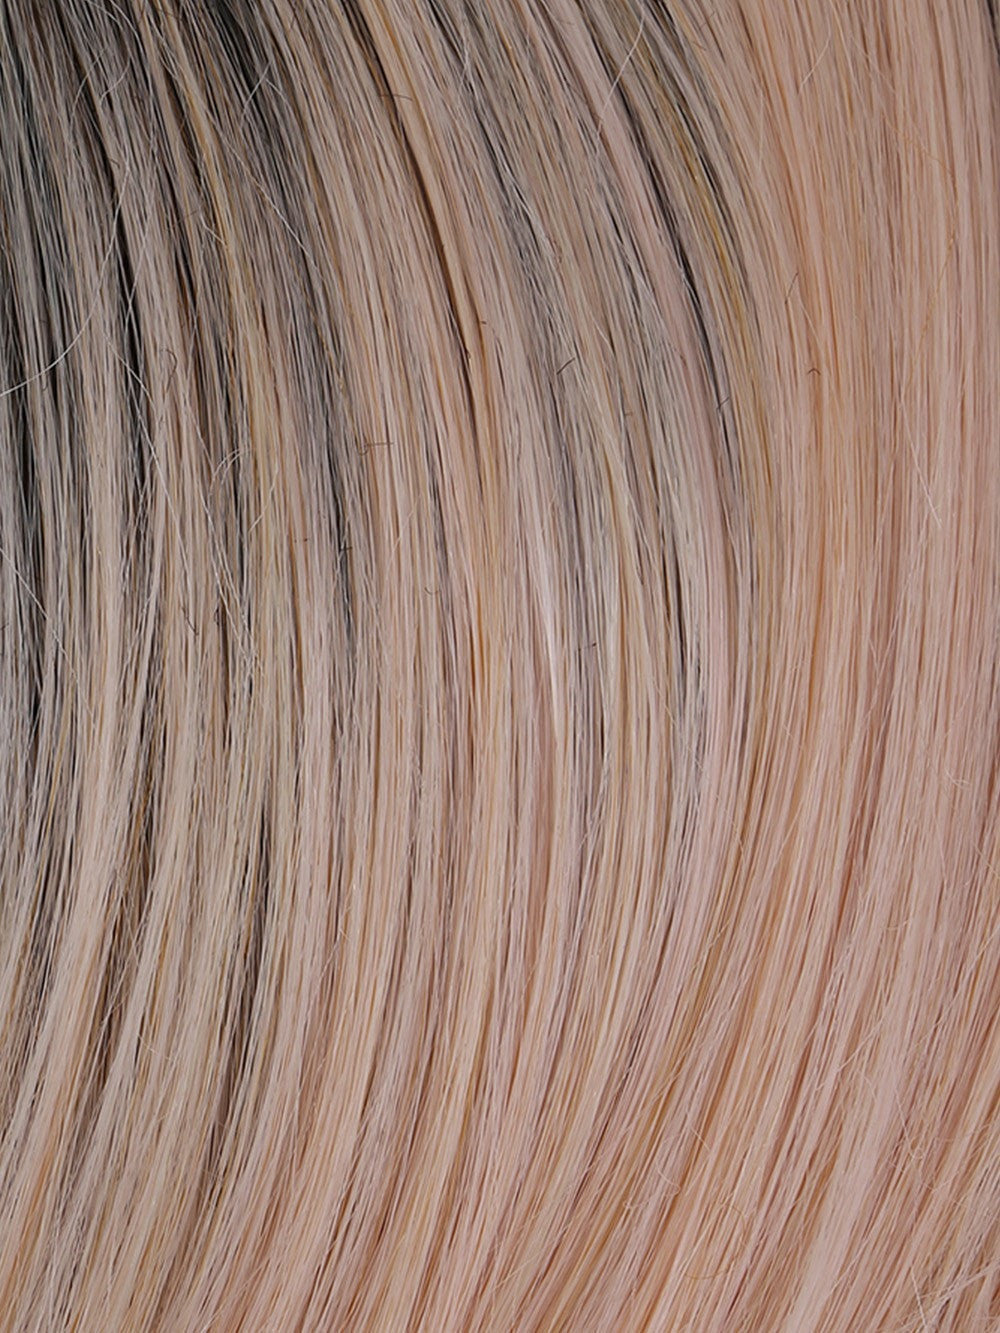 a5b1651ab8 Peachy Keen by HAIRDO | Colored Wigs - Hair Extensions.com